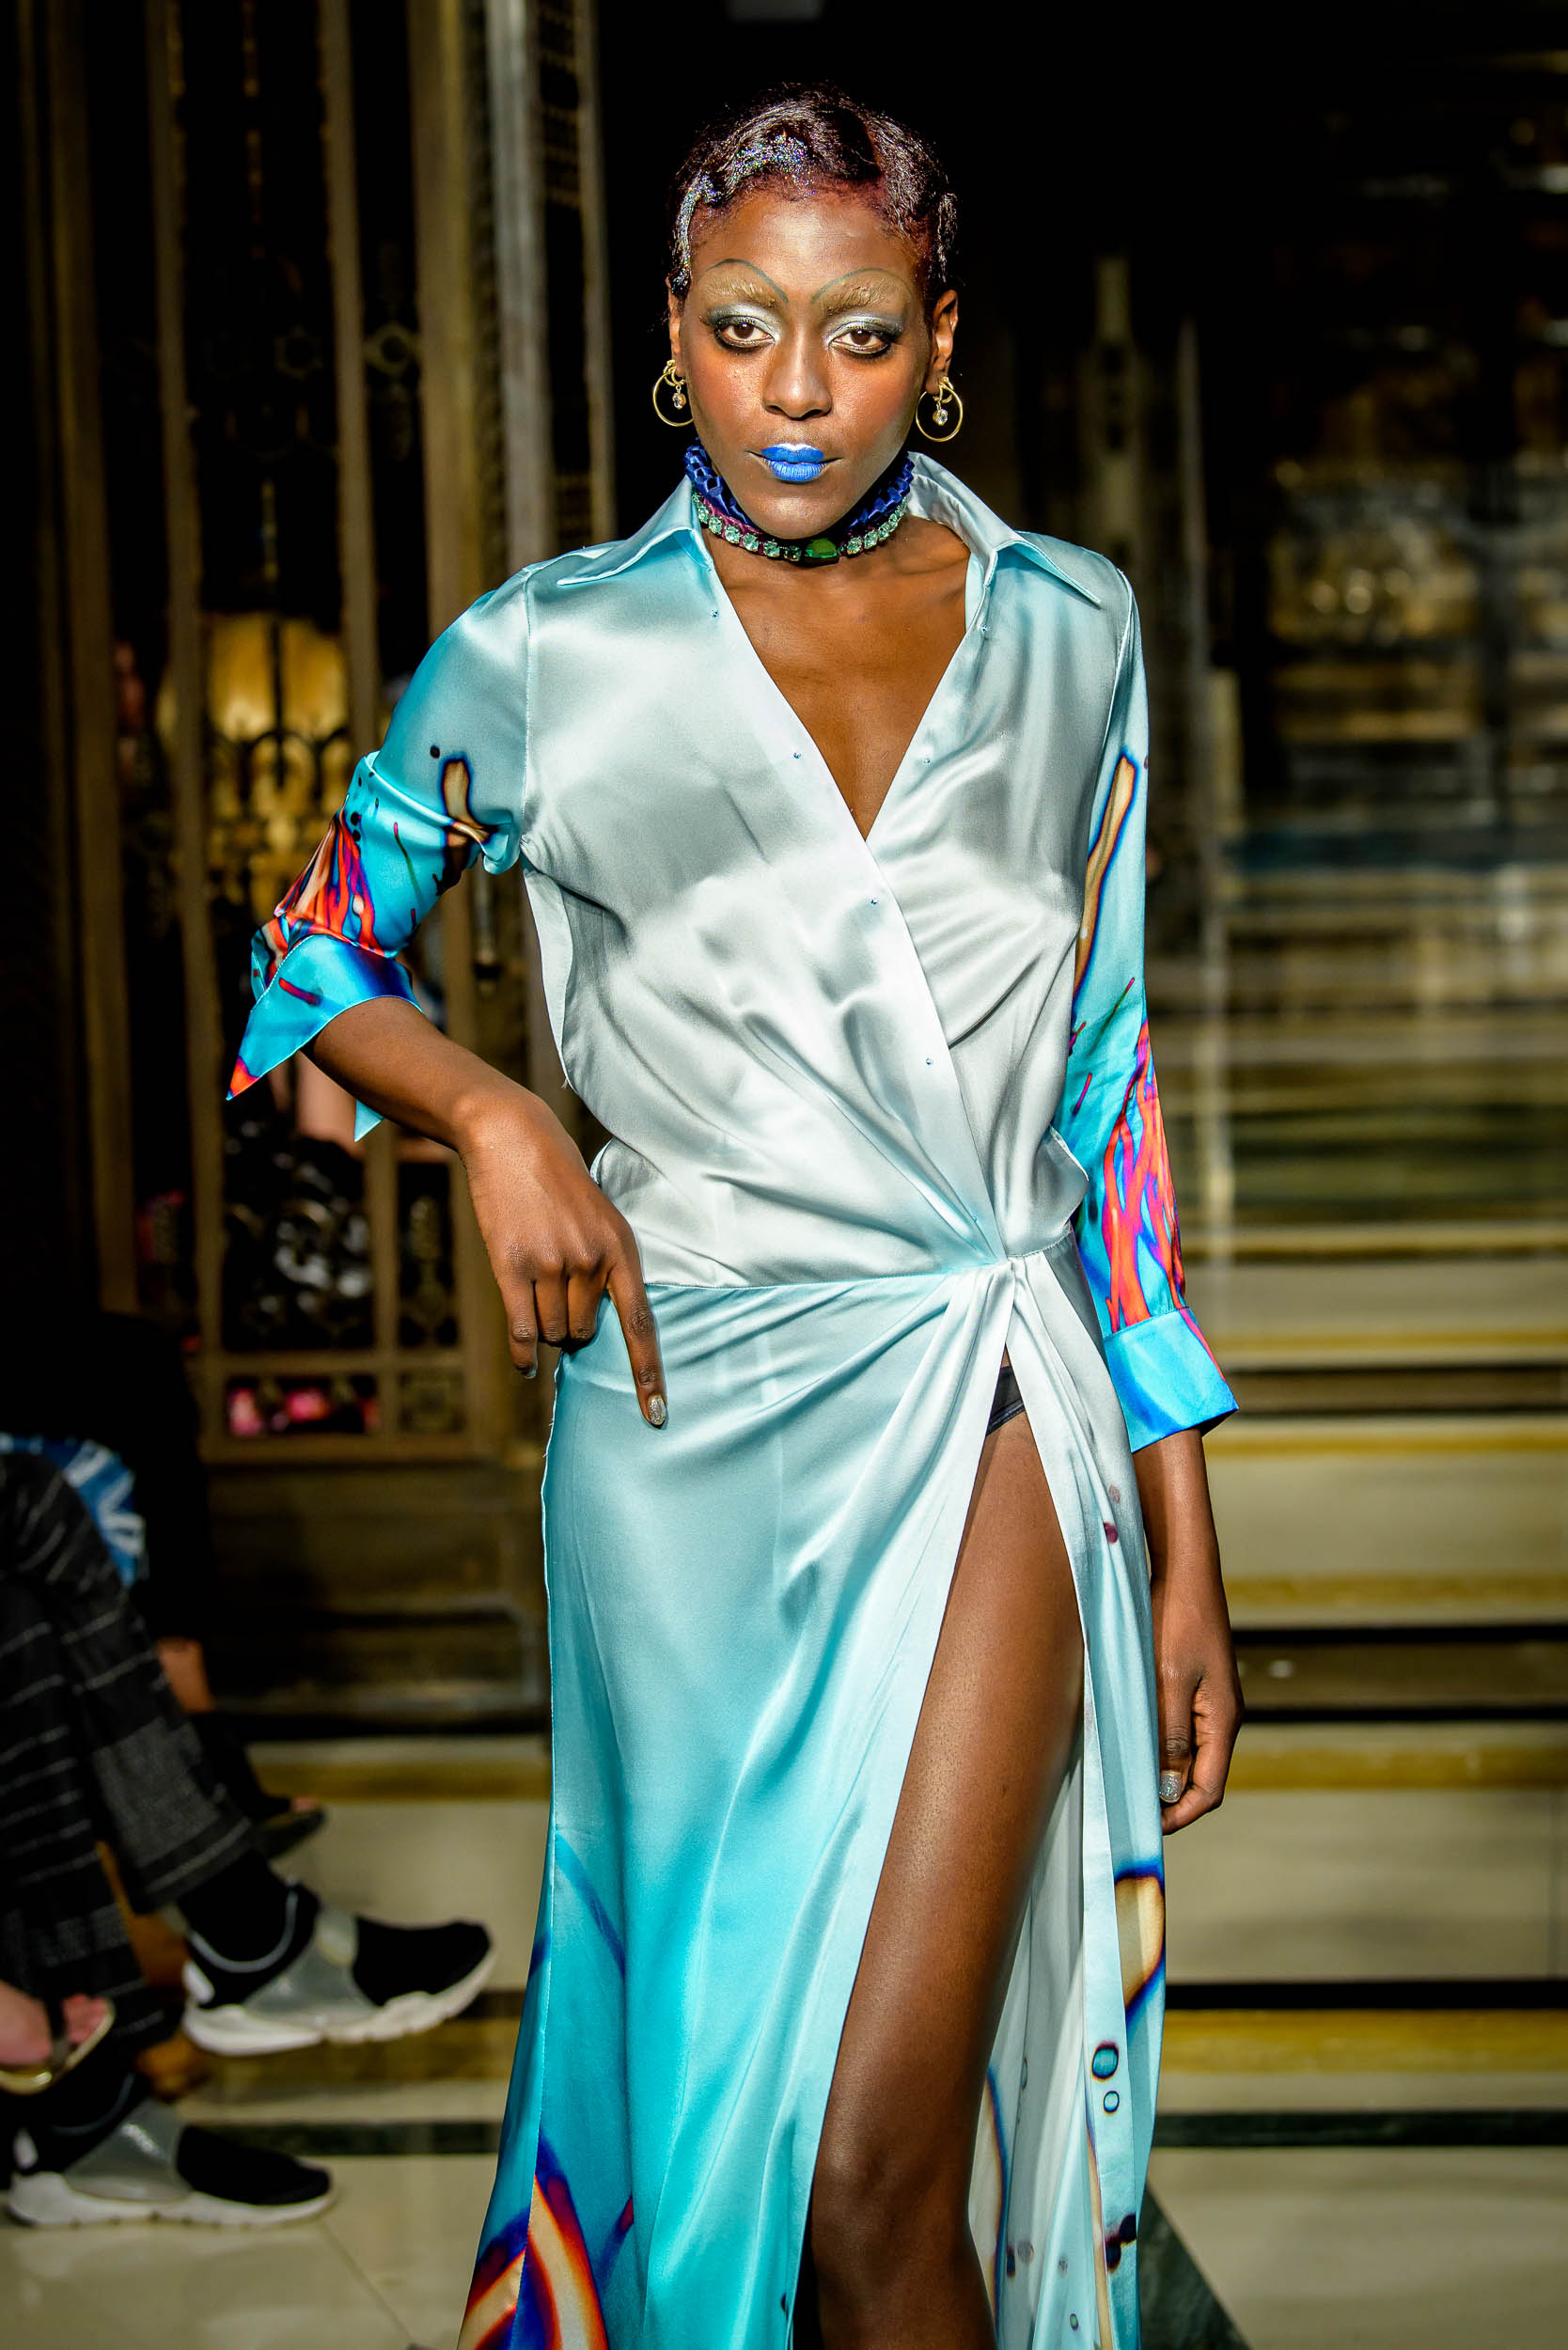 London Fashion Week S/S18 catwalk fashion show by Michaela Frankova photographer Barry Green